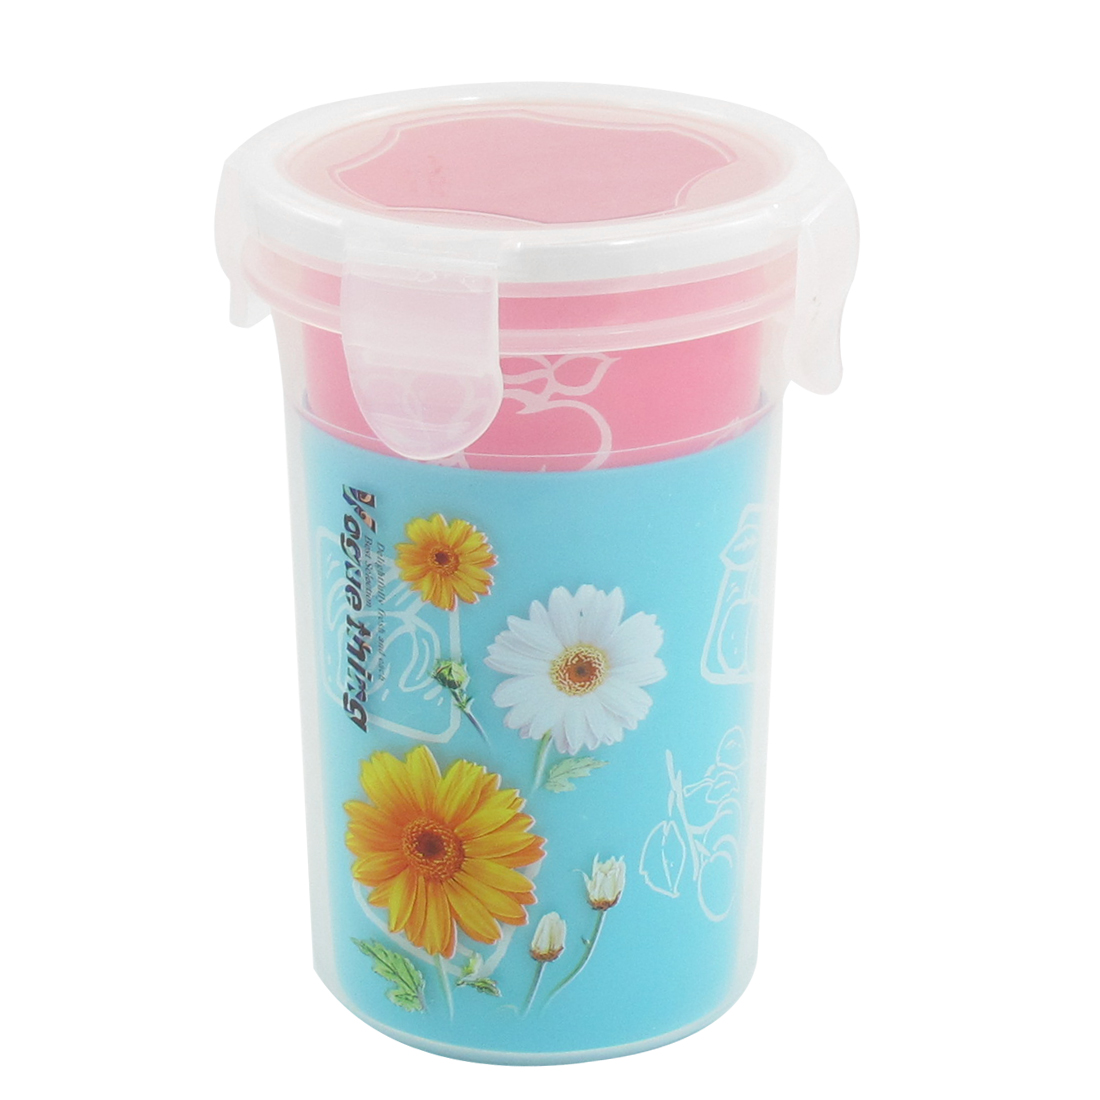 3 in 1 Portable Sunflowers Printed Plastic Water Drinking Bottle Cup Set